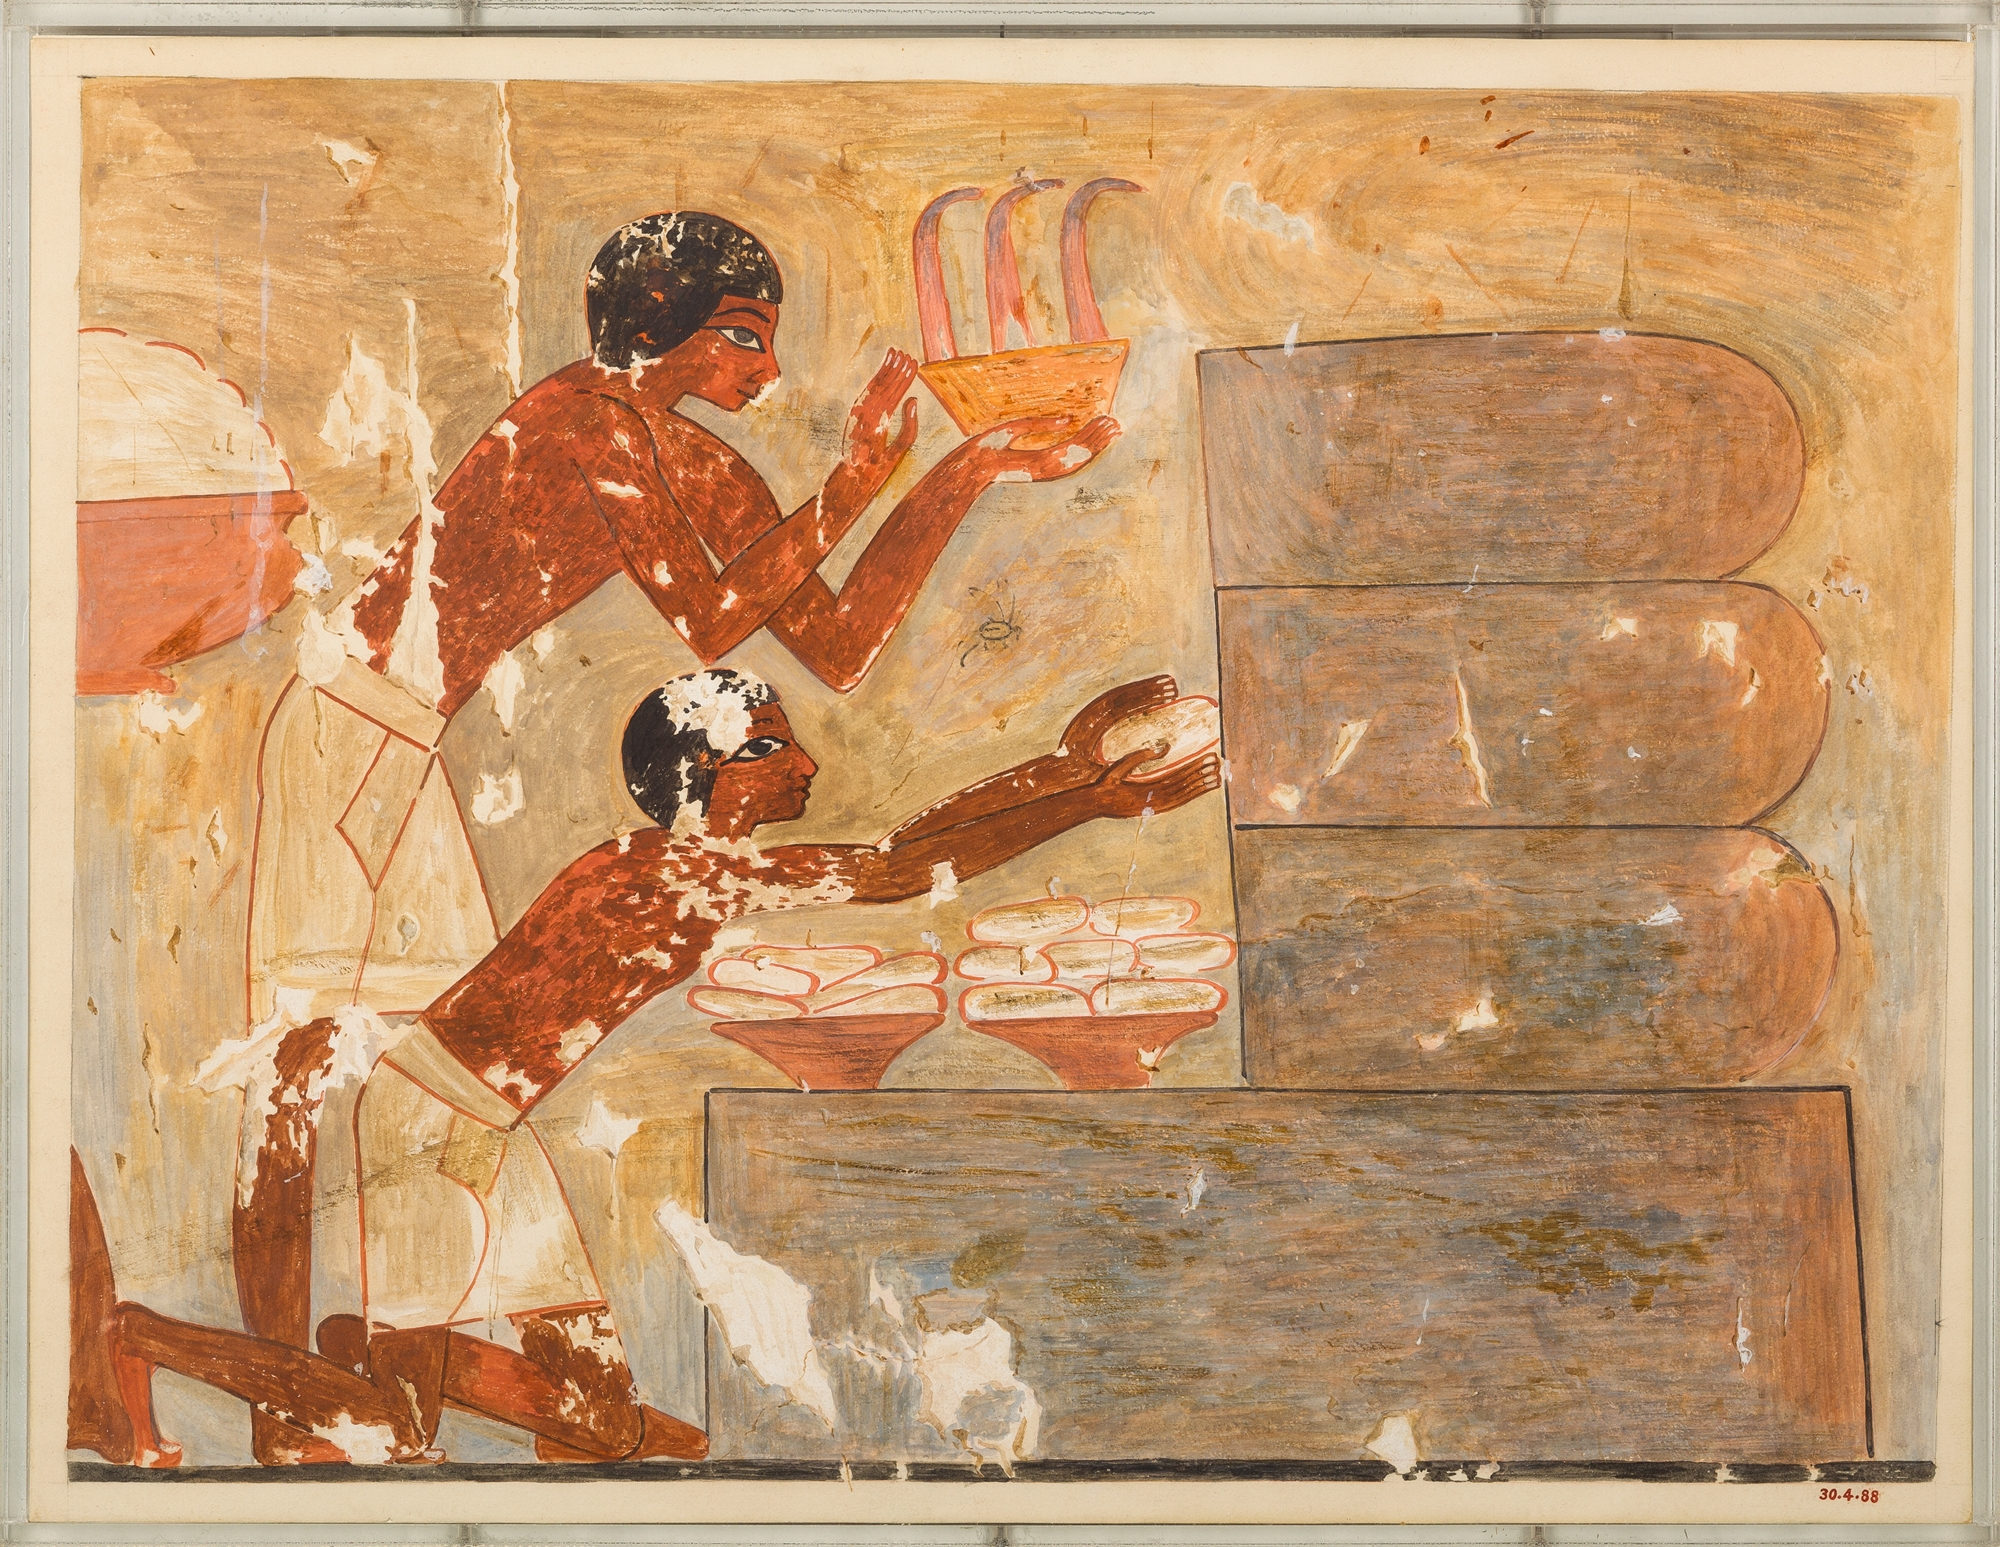 Painting by Nina de Garis Davies, painted in 1930, of the scene in the Tomb of Rekhmire of Workers Removing Honeycombs. Metropolitan Museum of Art, 30.4.88.